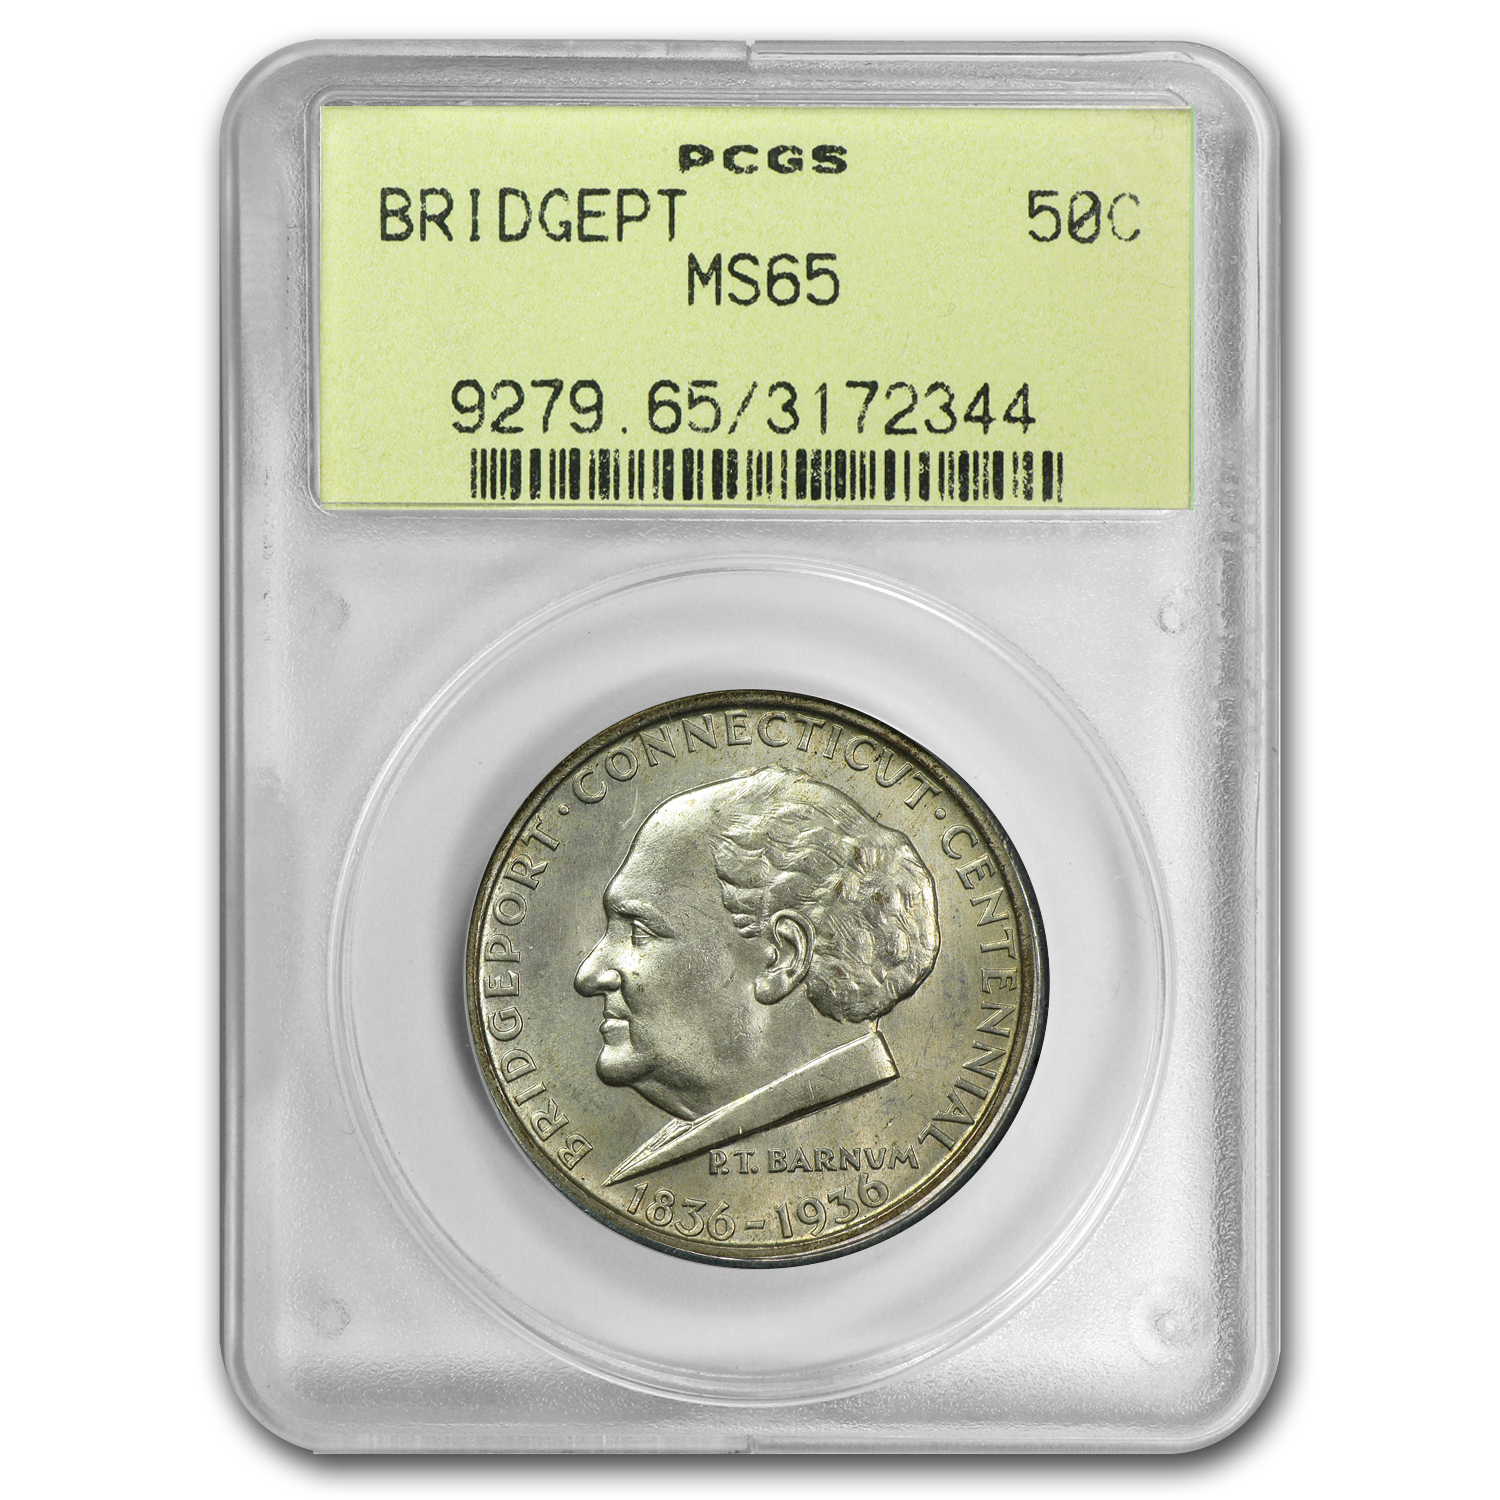 1936 Bridgeport Centennial MS-65 PCGS